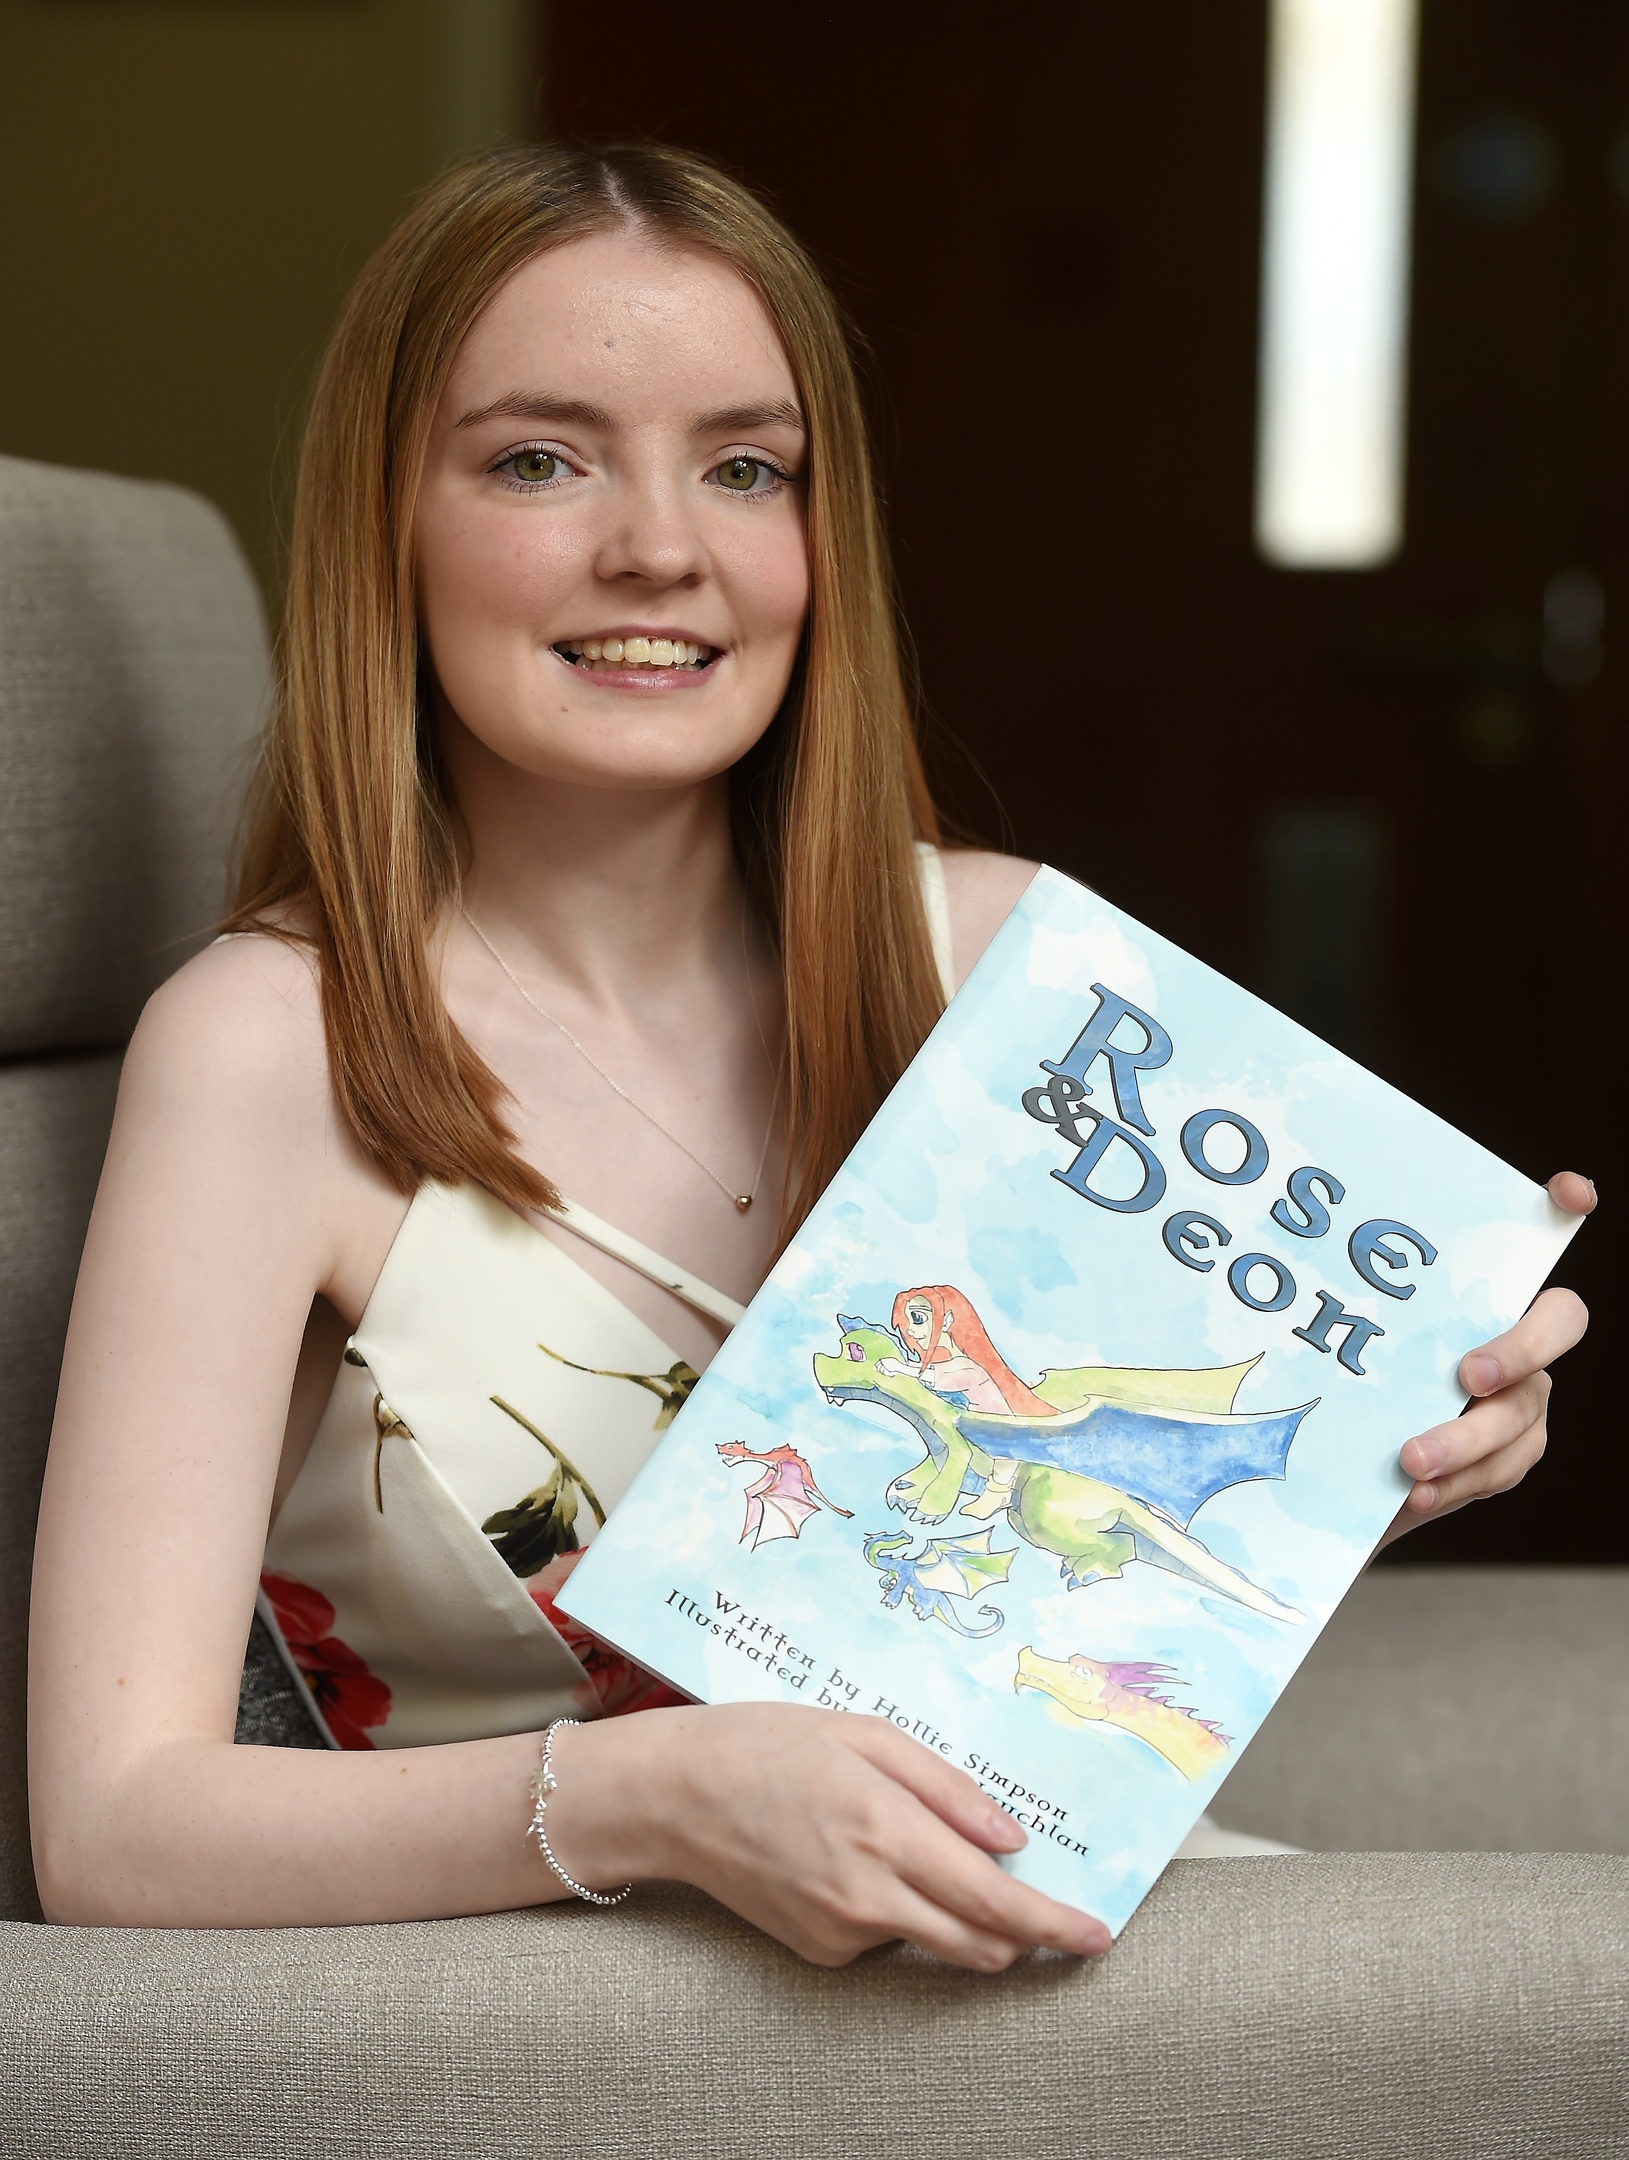 Holly Simpson of Forres launches her book yesterday (Thurs) in the Netley Centre of the Highland Hospice in Inverness. Picture by Sandy McCook.